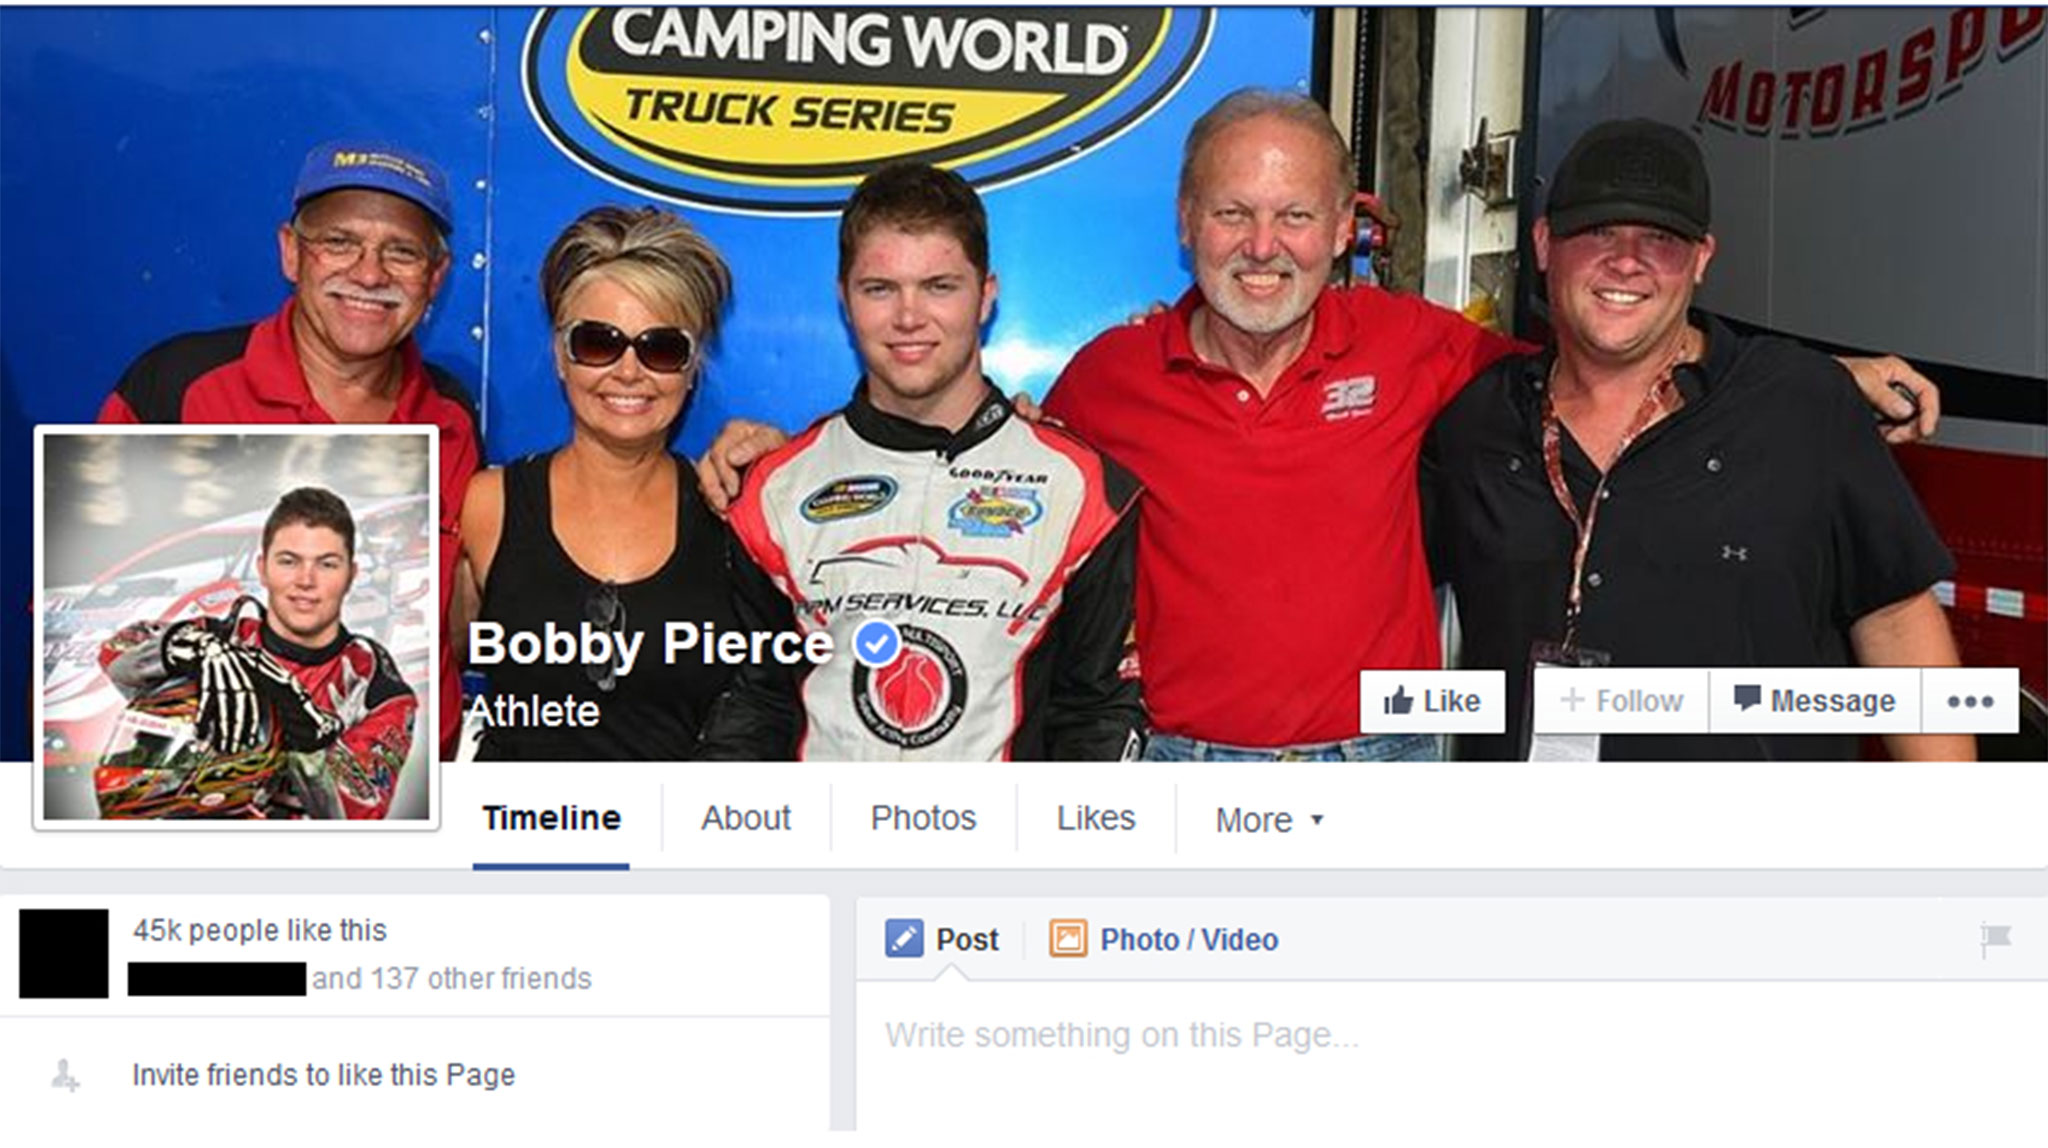 Your personal Facebook page might work, but look at the number of followers here. Your personal page has a cutoff point. Bobby Pierce, whose career is just beginning, is already at 45,000 and growing.